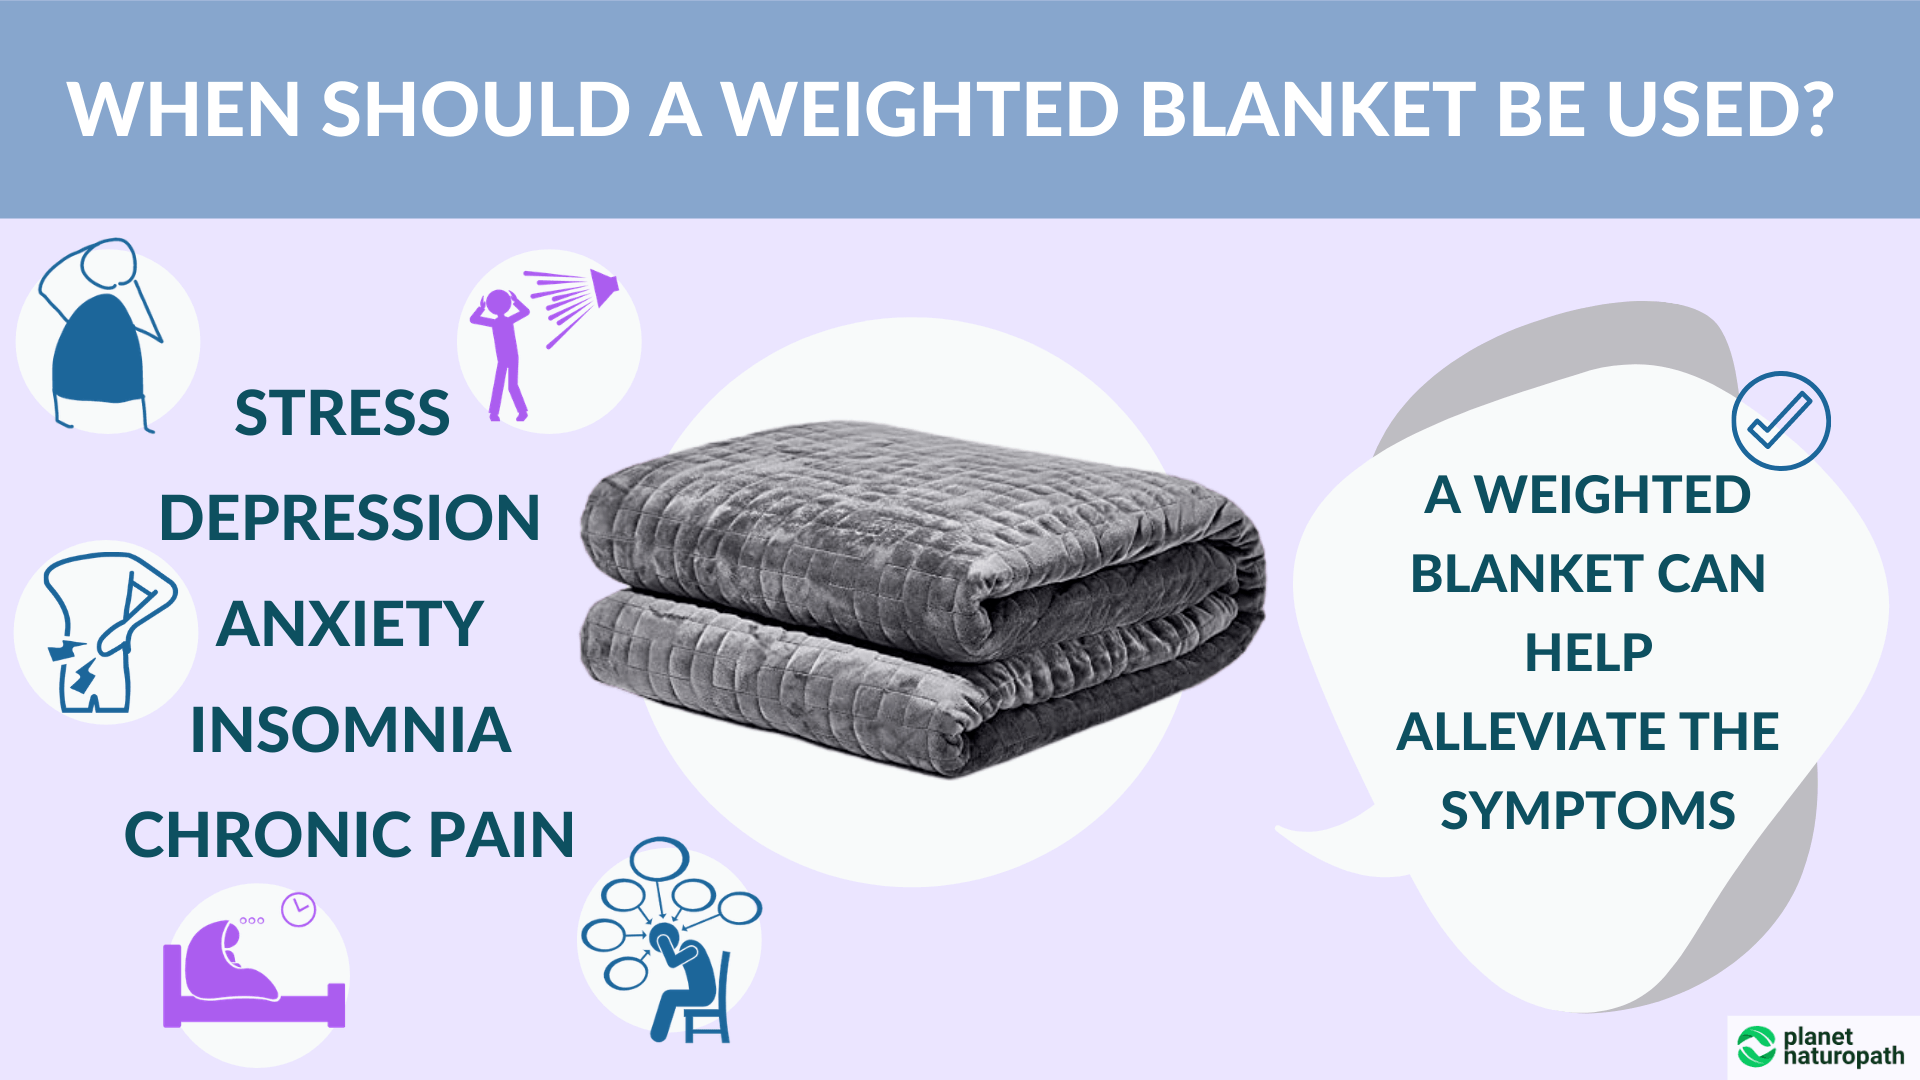 When-should-a-weighted-blanket-be-used